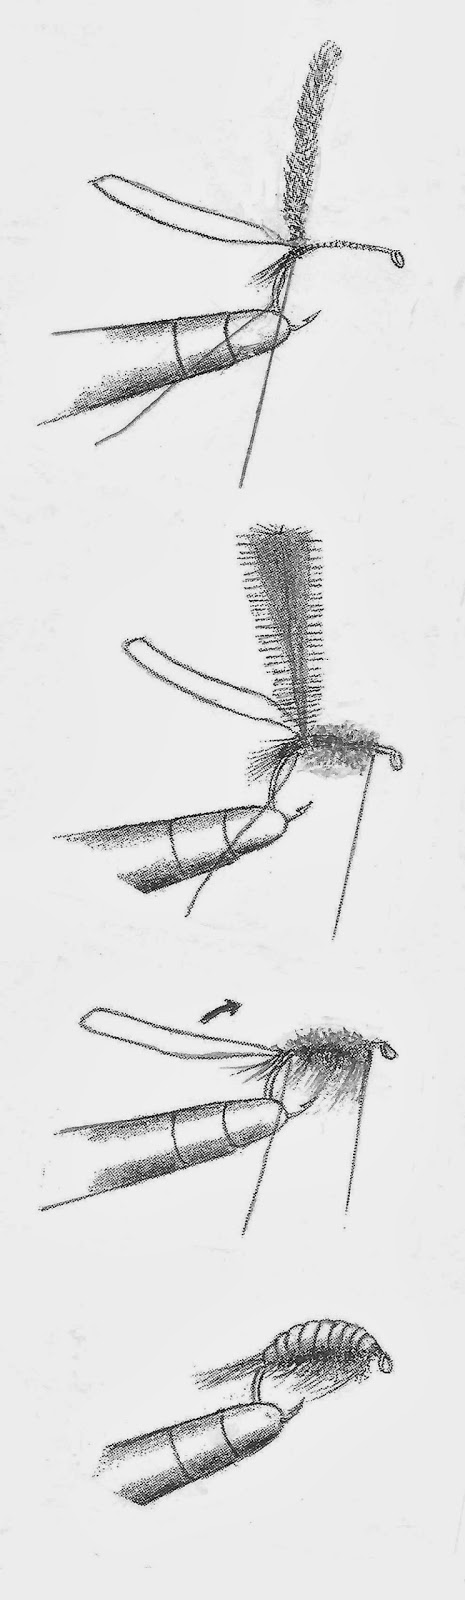 Four drawings showing how to tie a scud or shrimp fly.